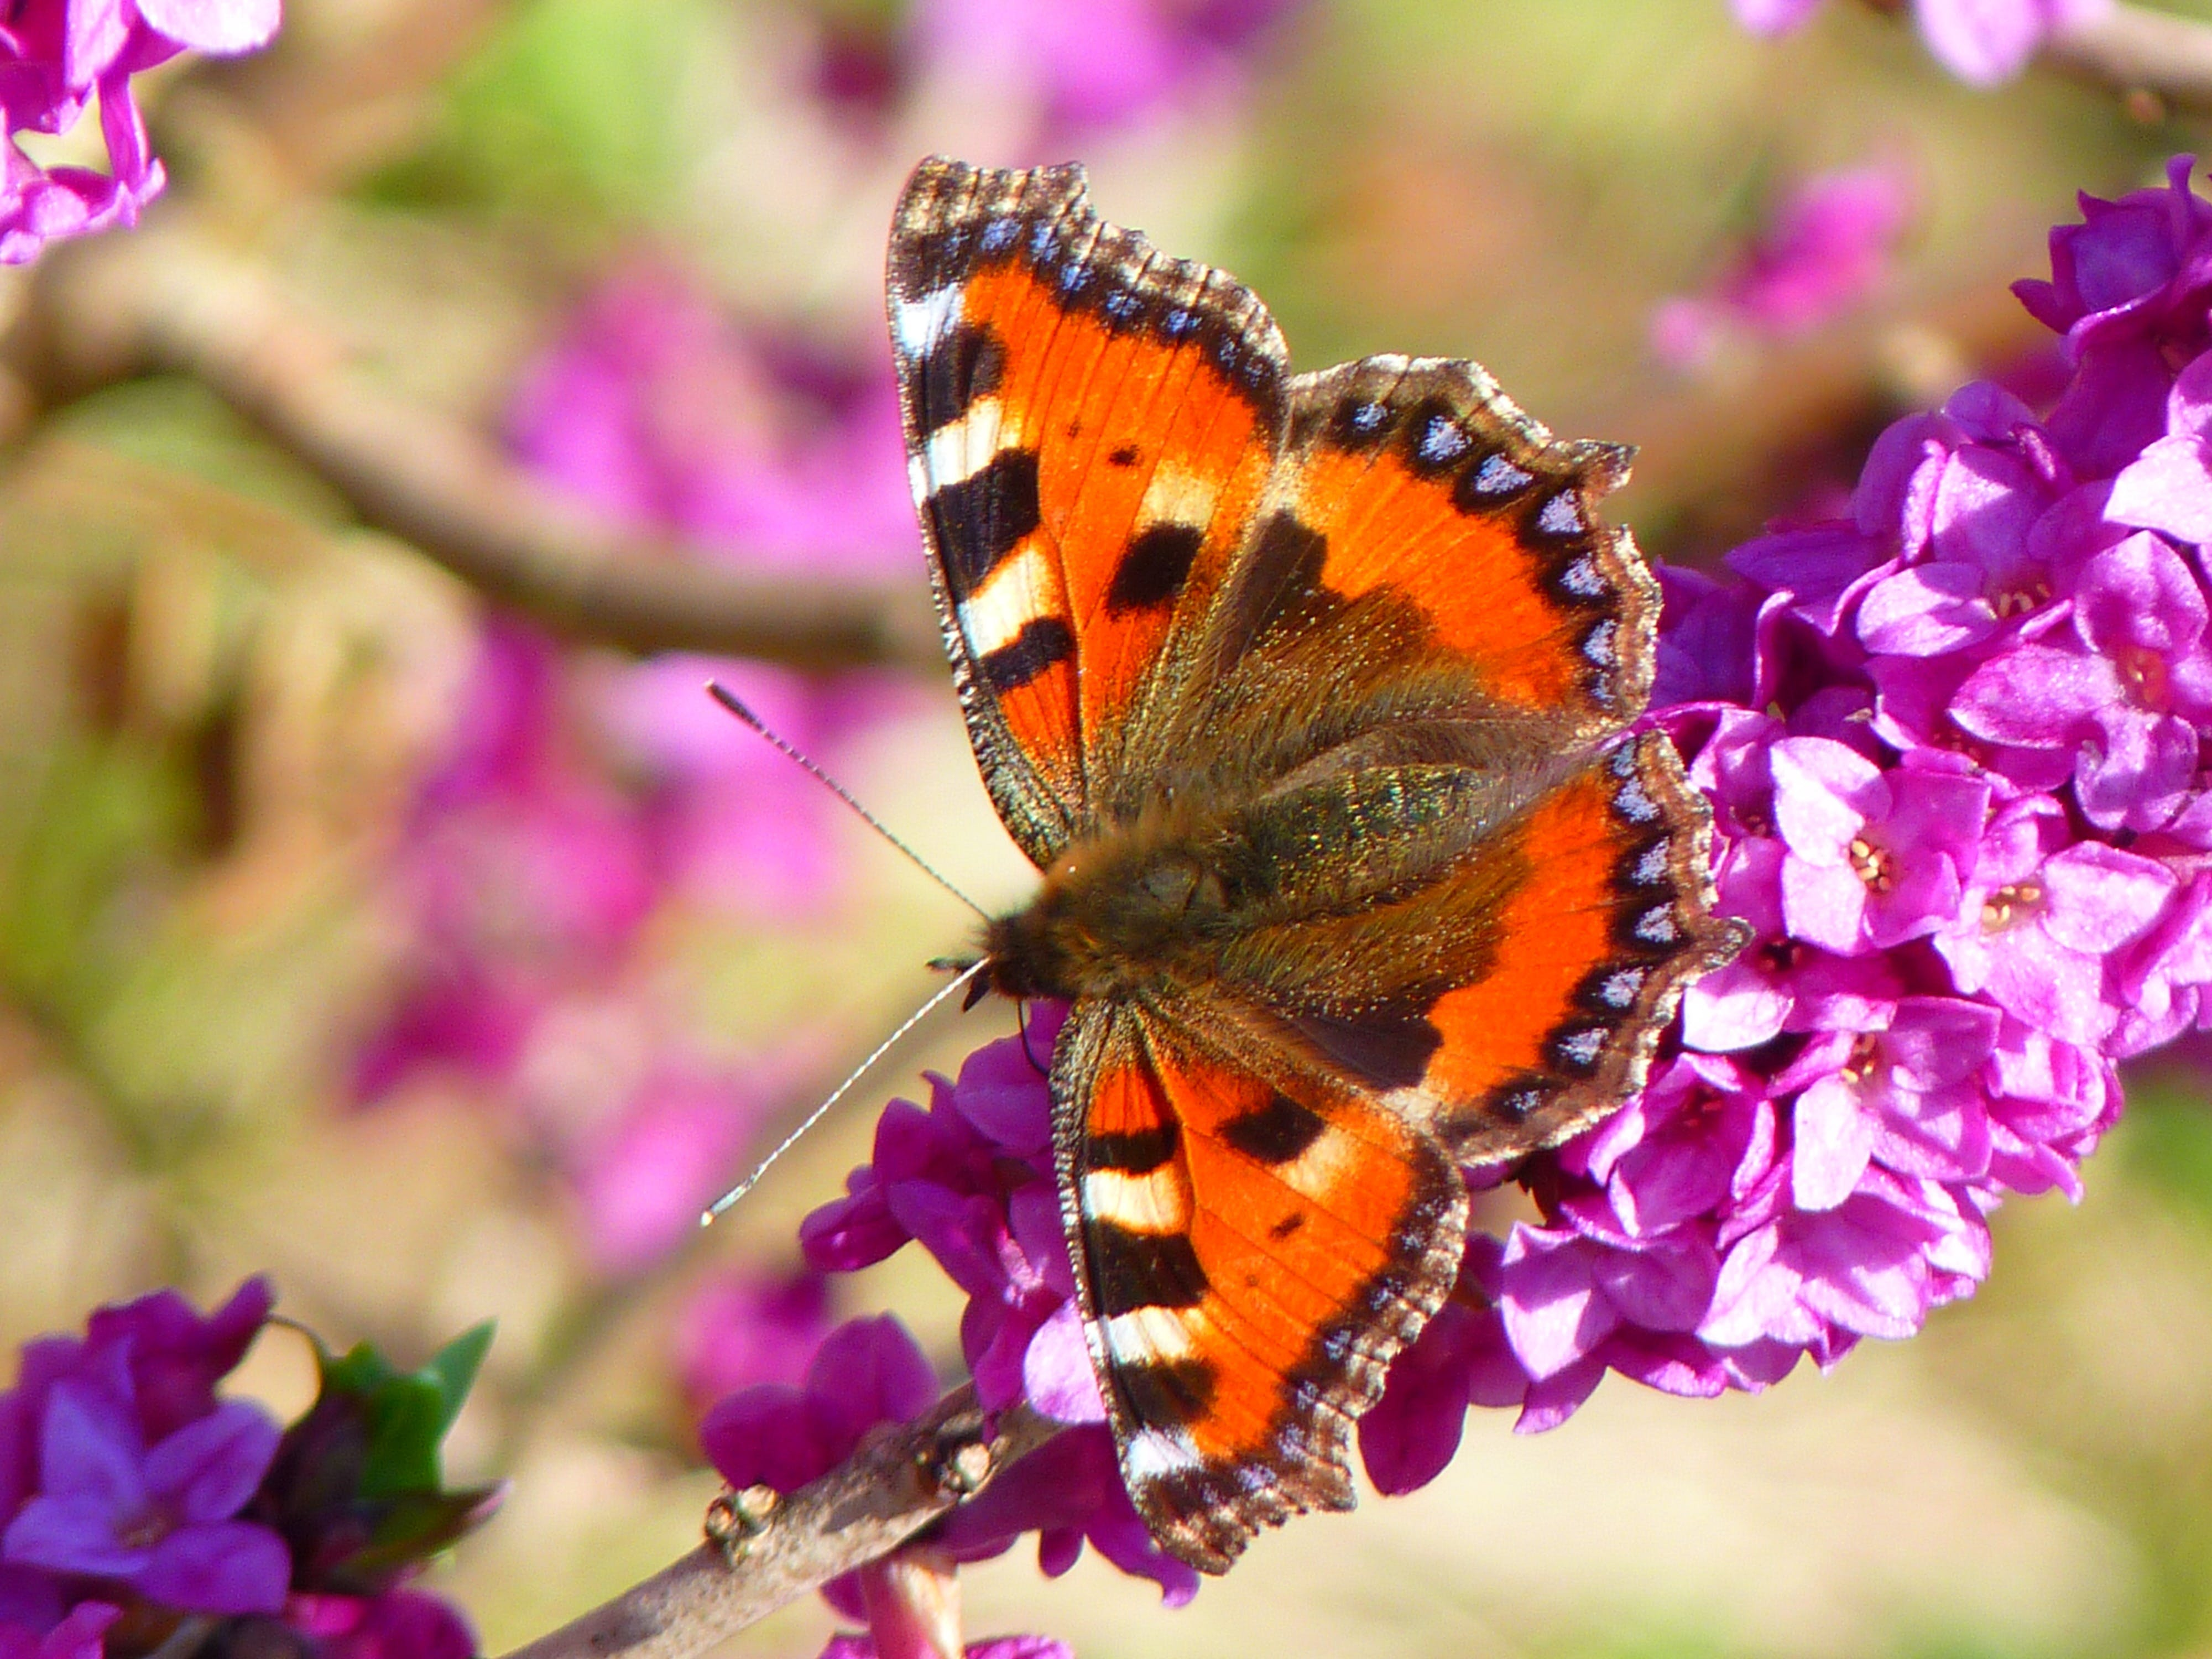 Orange White and Brown Butterfly on Pink Petal Flower